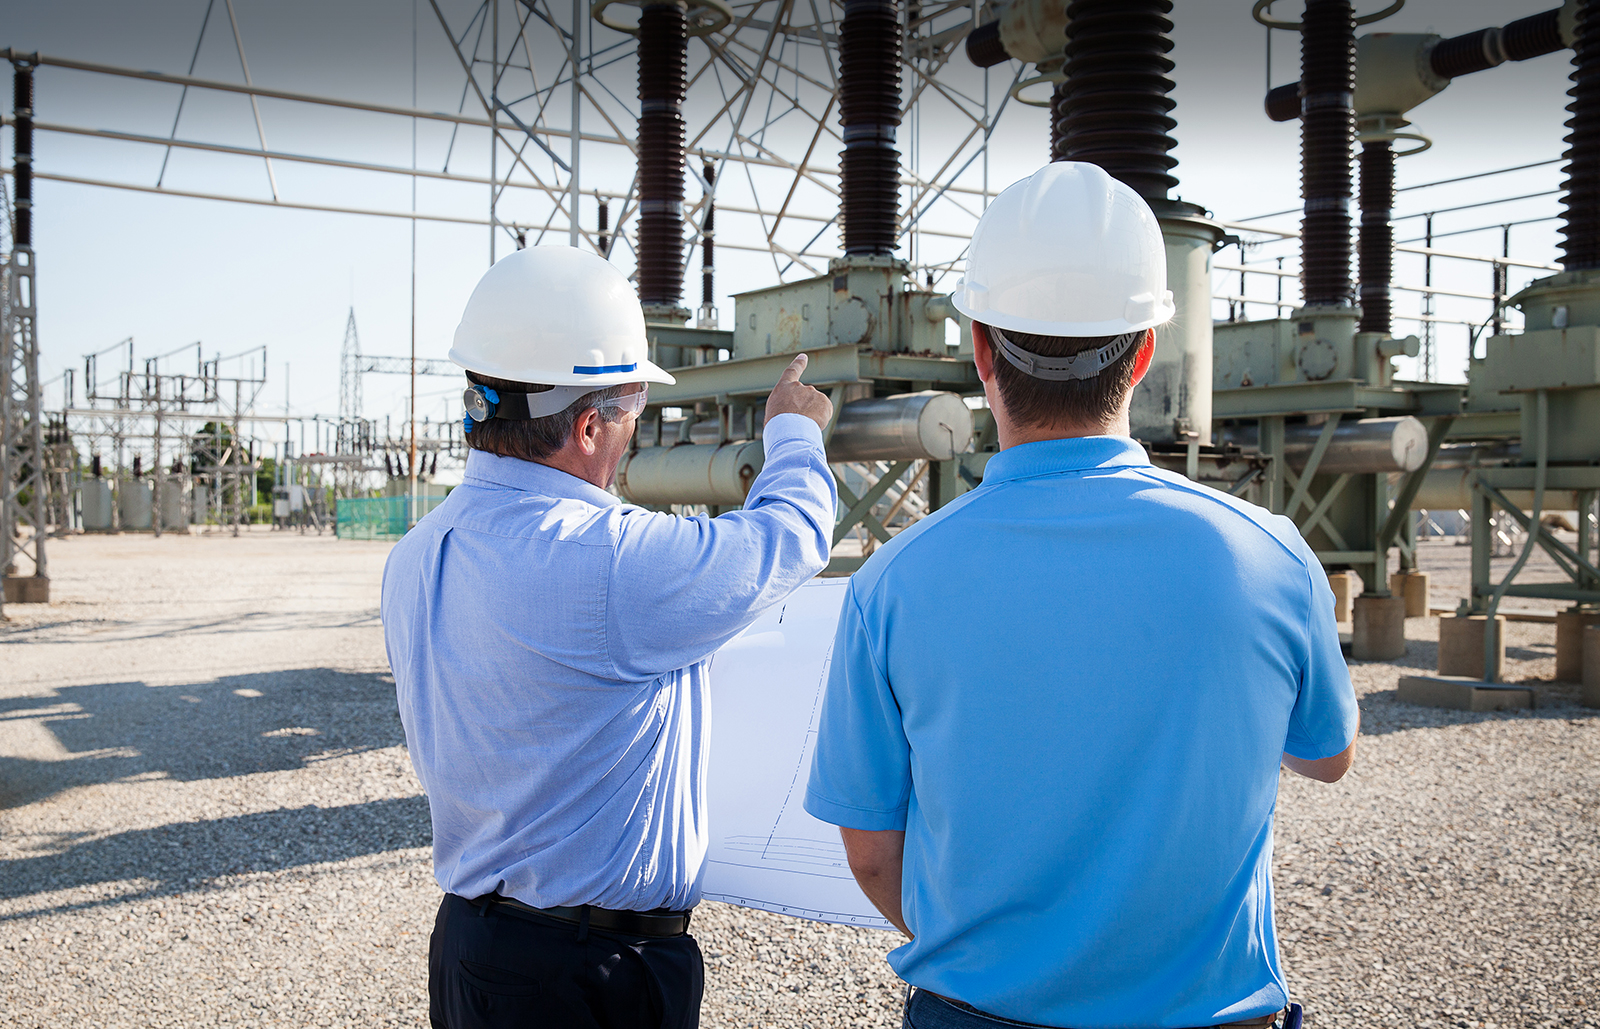 Lessons in substation physical security